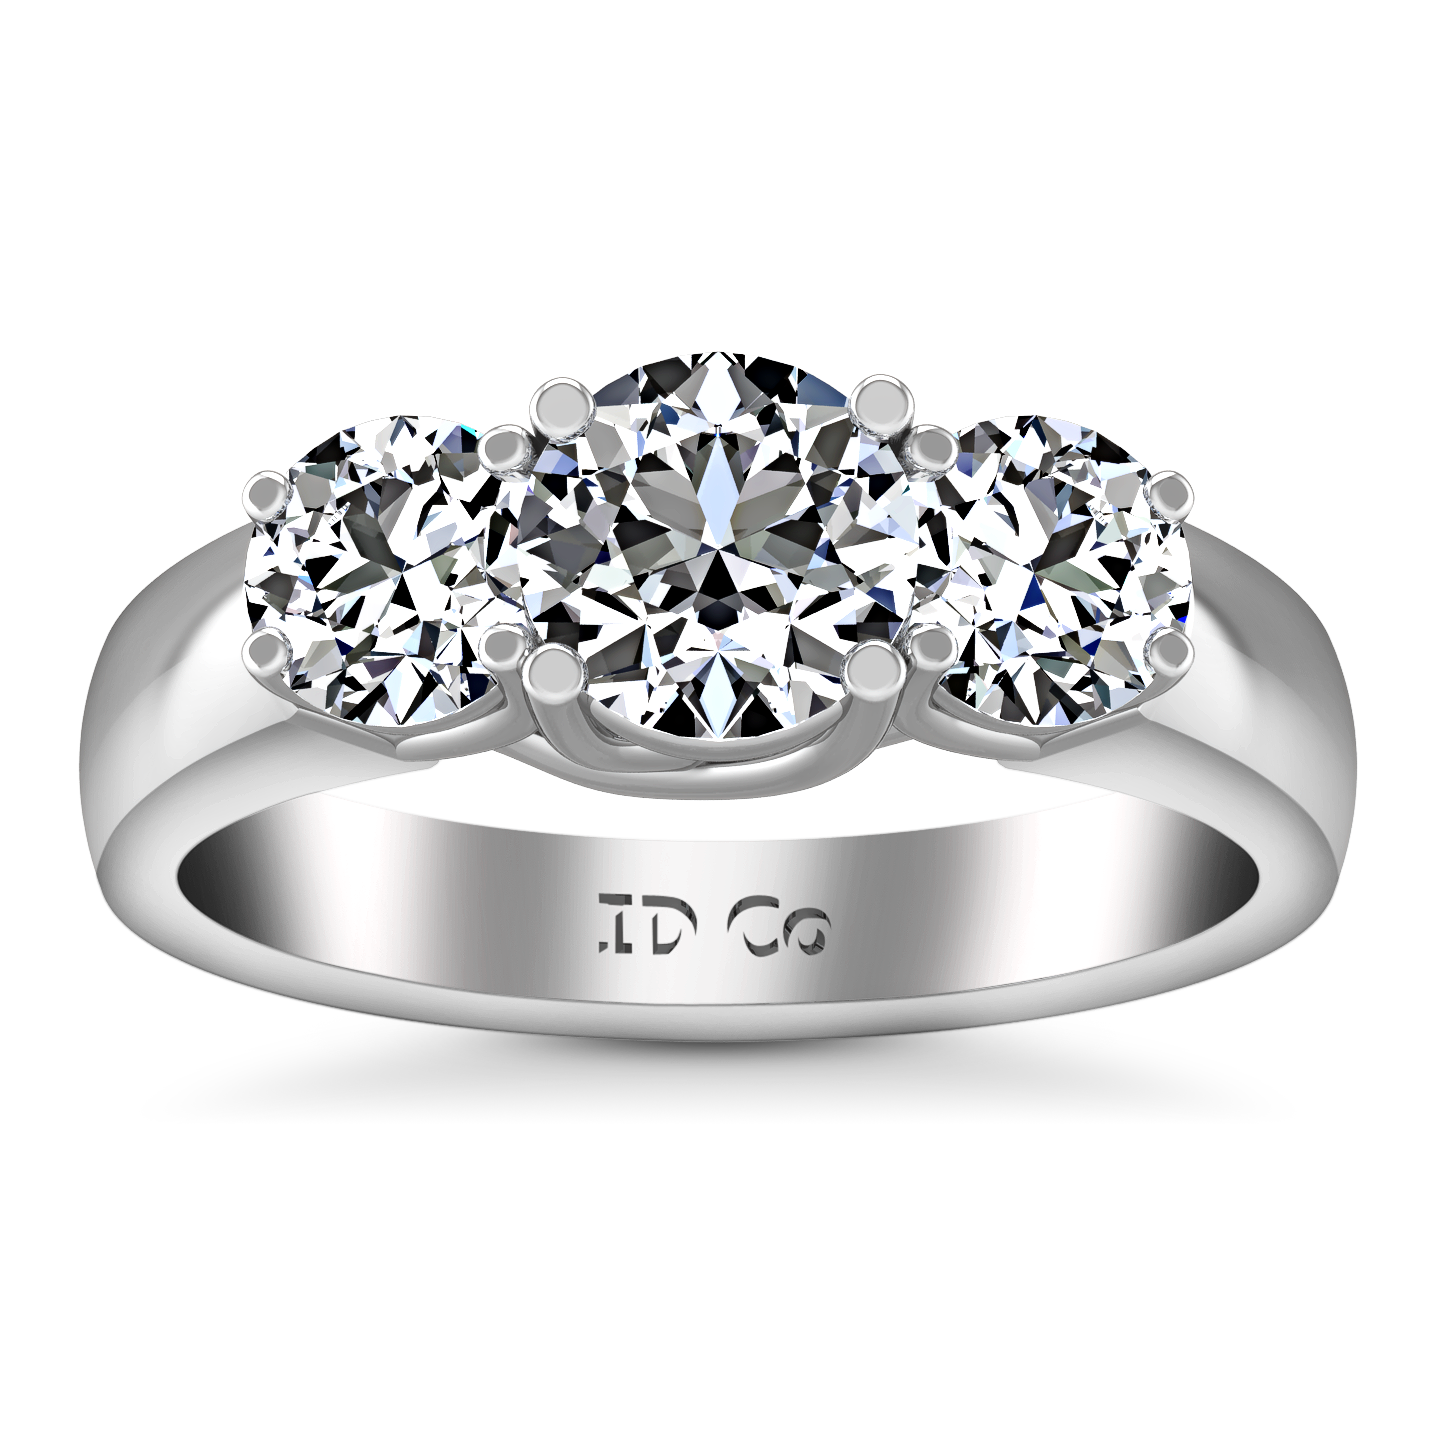 ring unusual uk diamond engagement side view design product wave source rings stone ripple